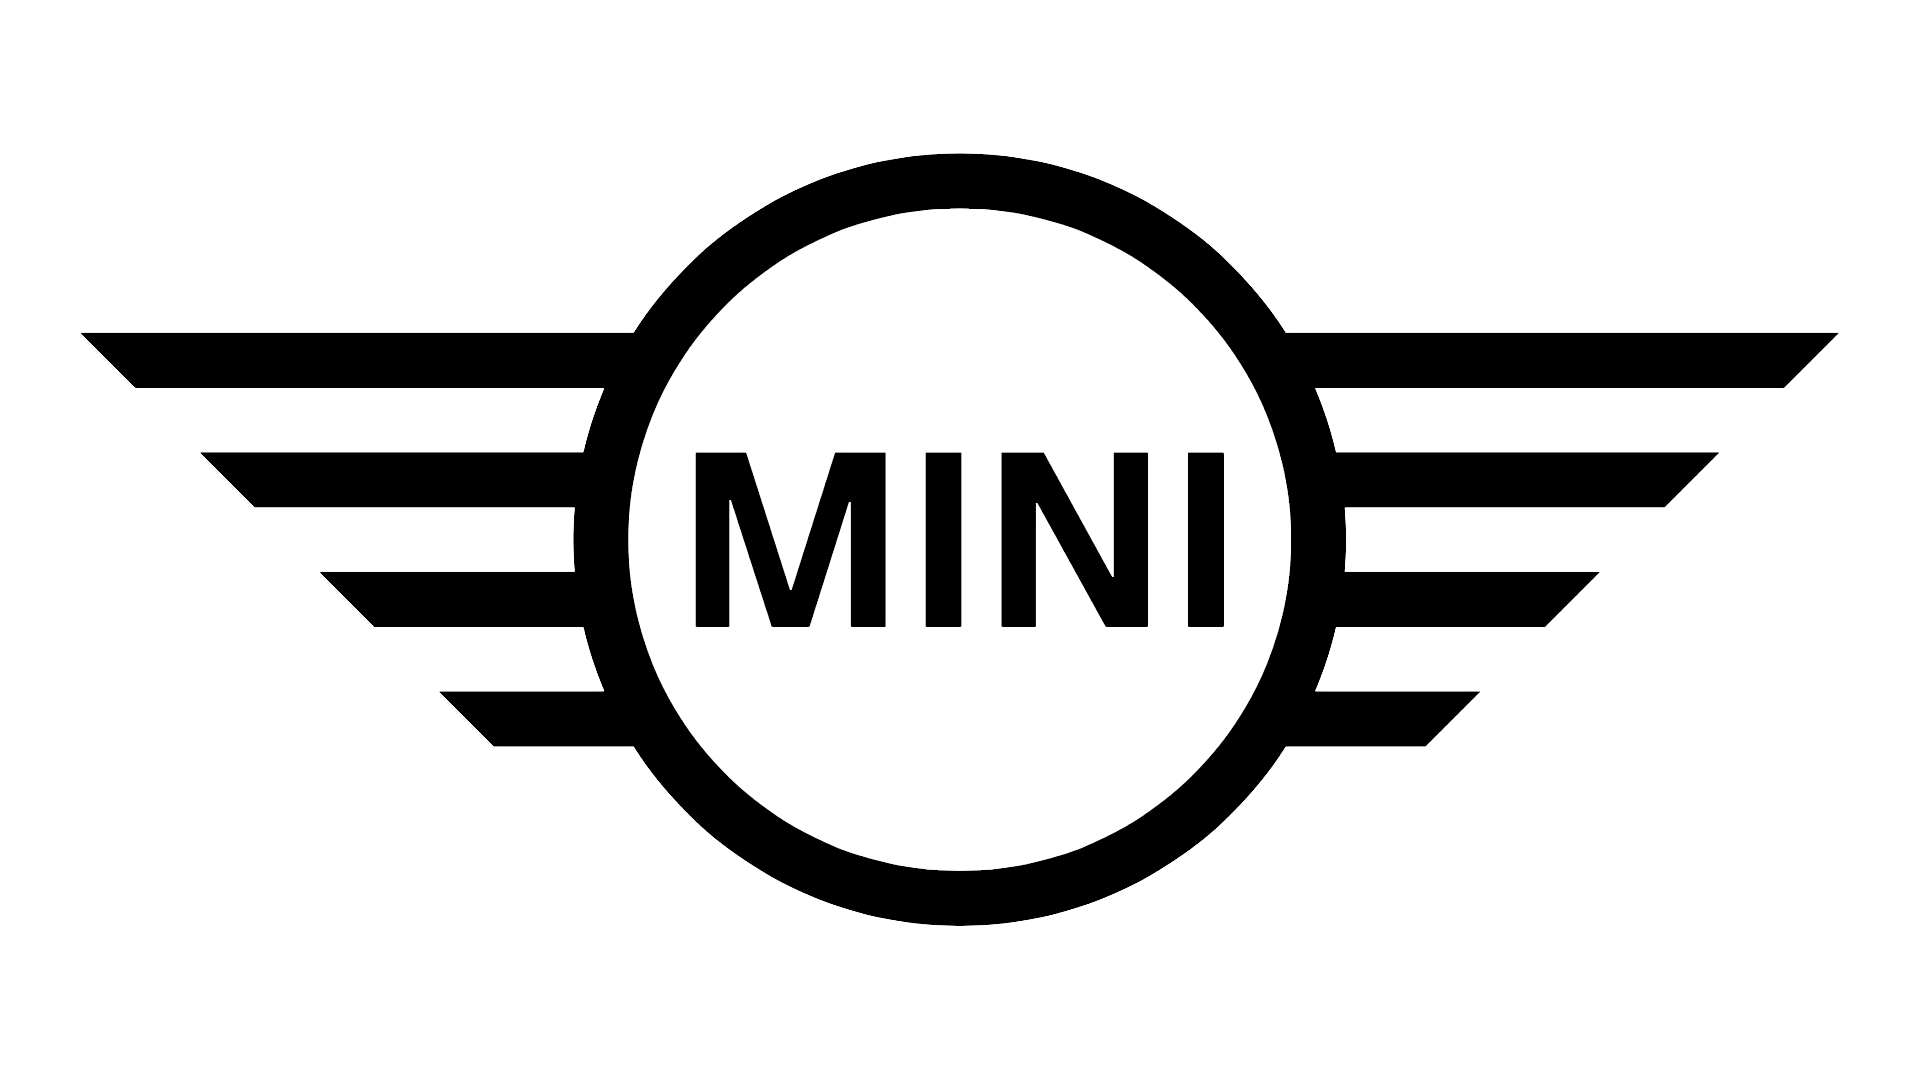 Mini Logo (2015) 1920x1080 HD png - Mini HD PNG